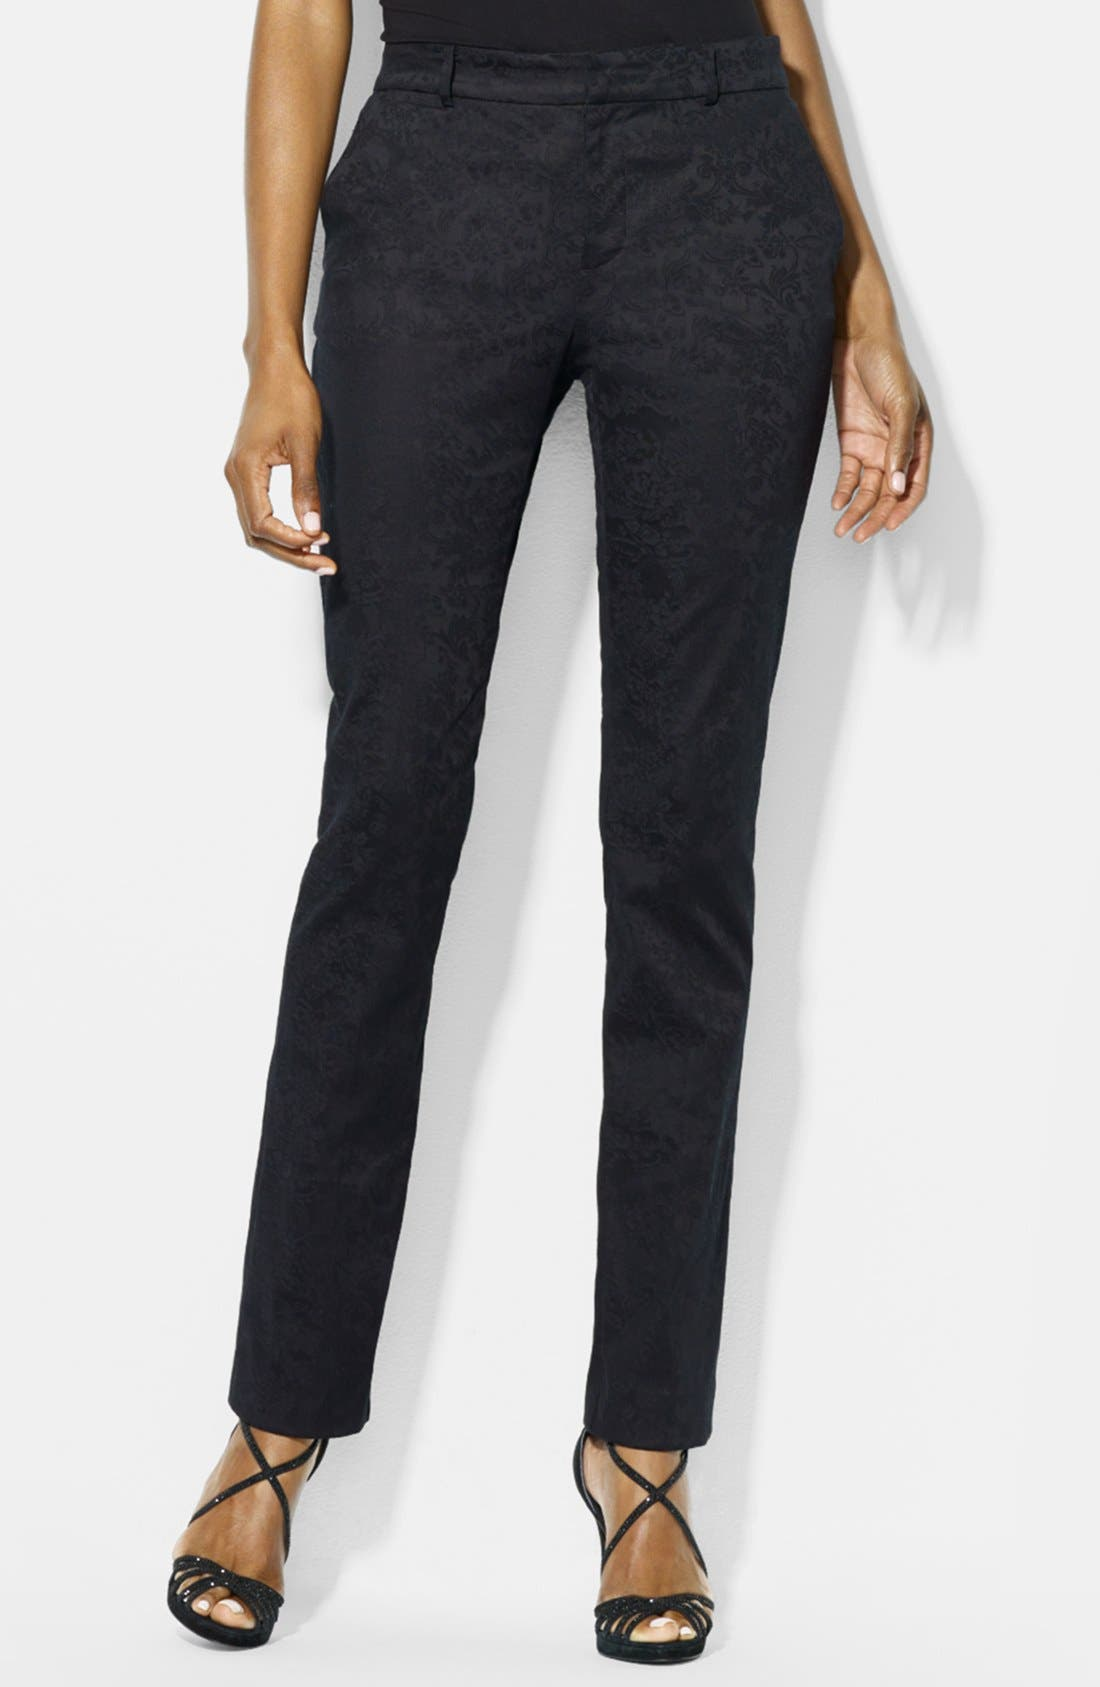 Alternate Image 1 Selected - Lauren Ralph Lauren Tapestry Jacquard Pants (Petite)